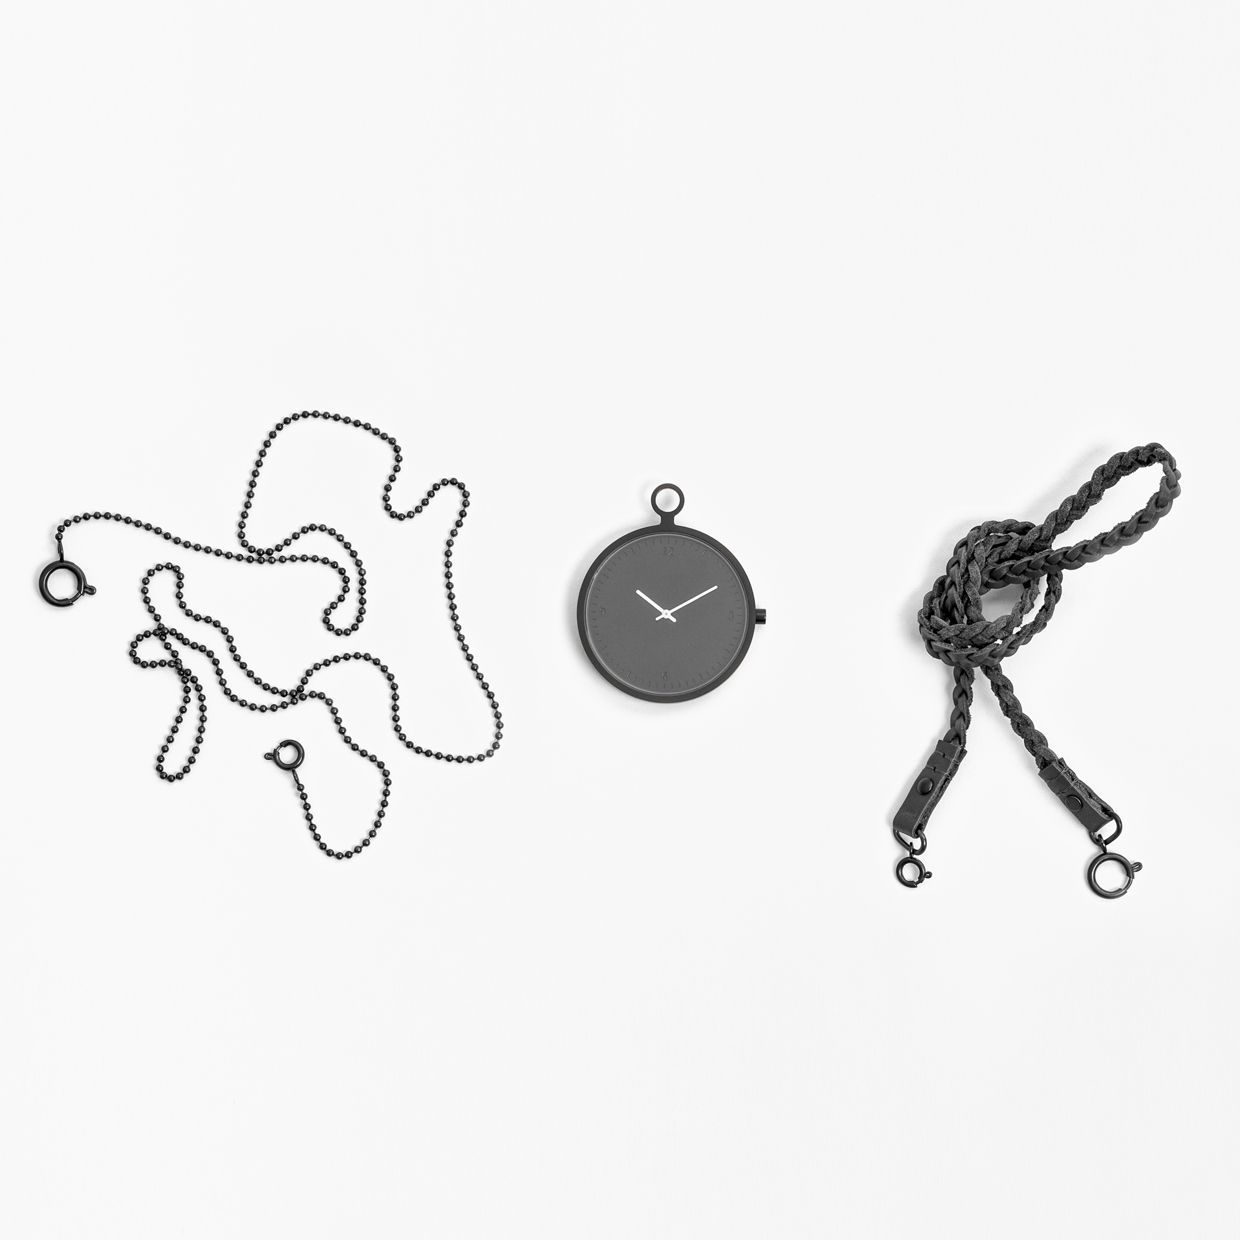 Stockholm design collective People People built a name for itself through product and experience design collaborations with big clients like Ikea, as well as smaller companies like the Bookman bicycle accessories brand. They wanted to update the traditional pocket watch, in the same way that fashion designers had updated the three piece suit for modern tastes. #watches #design